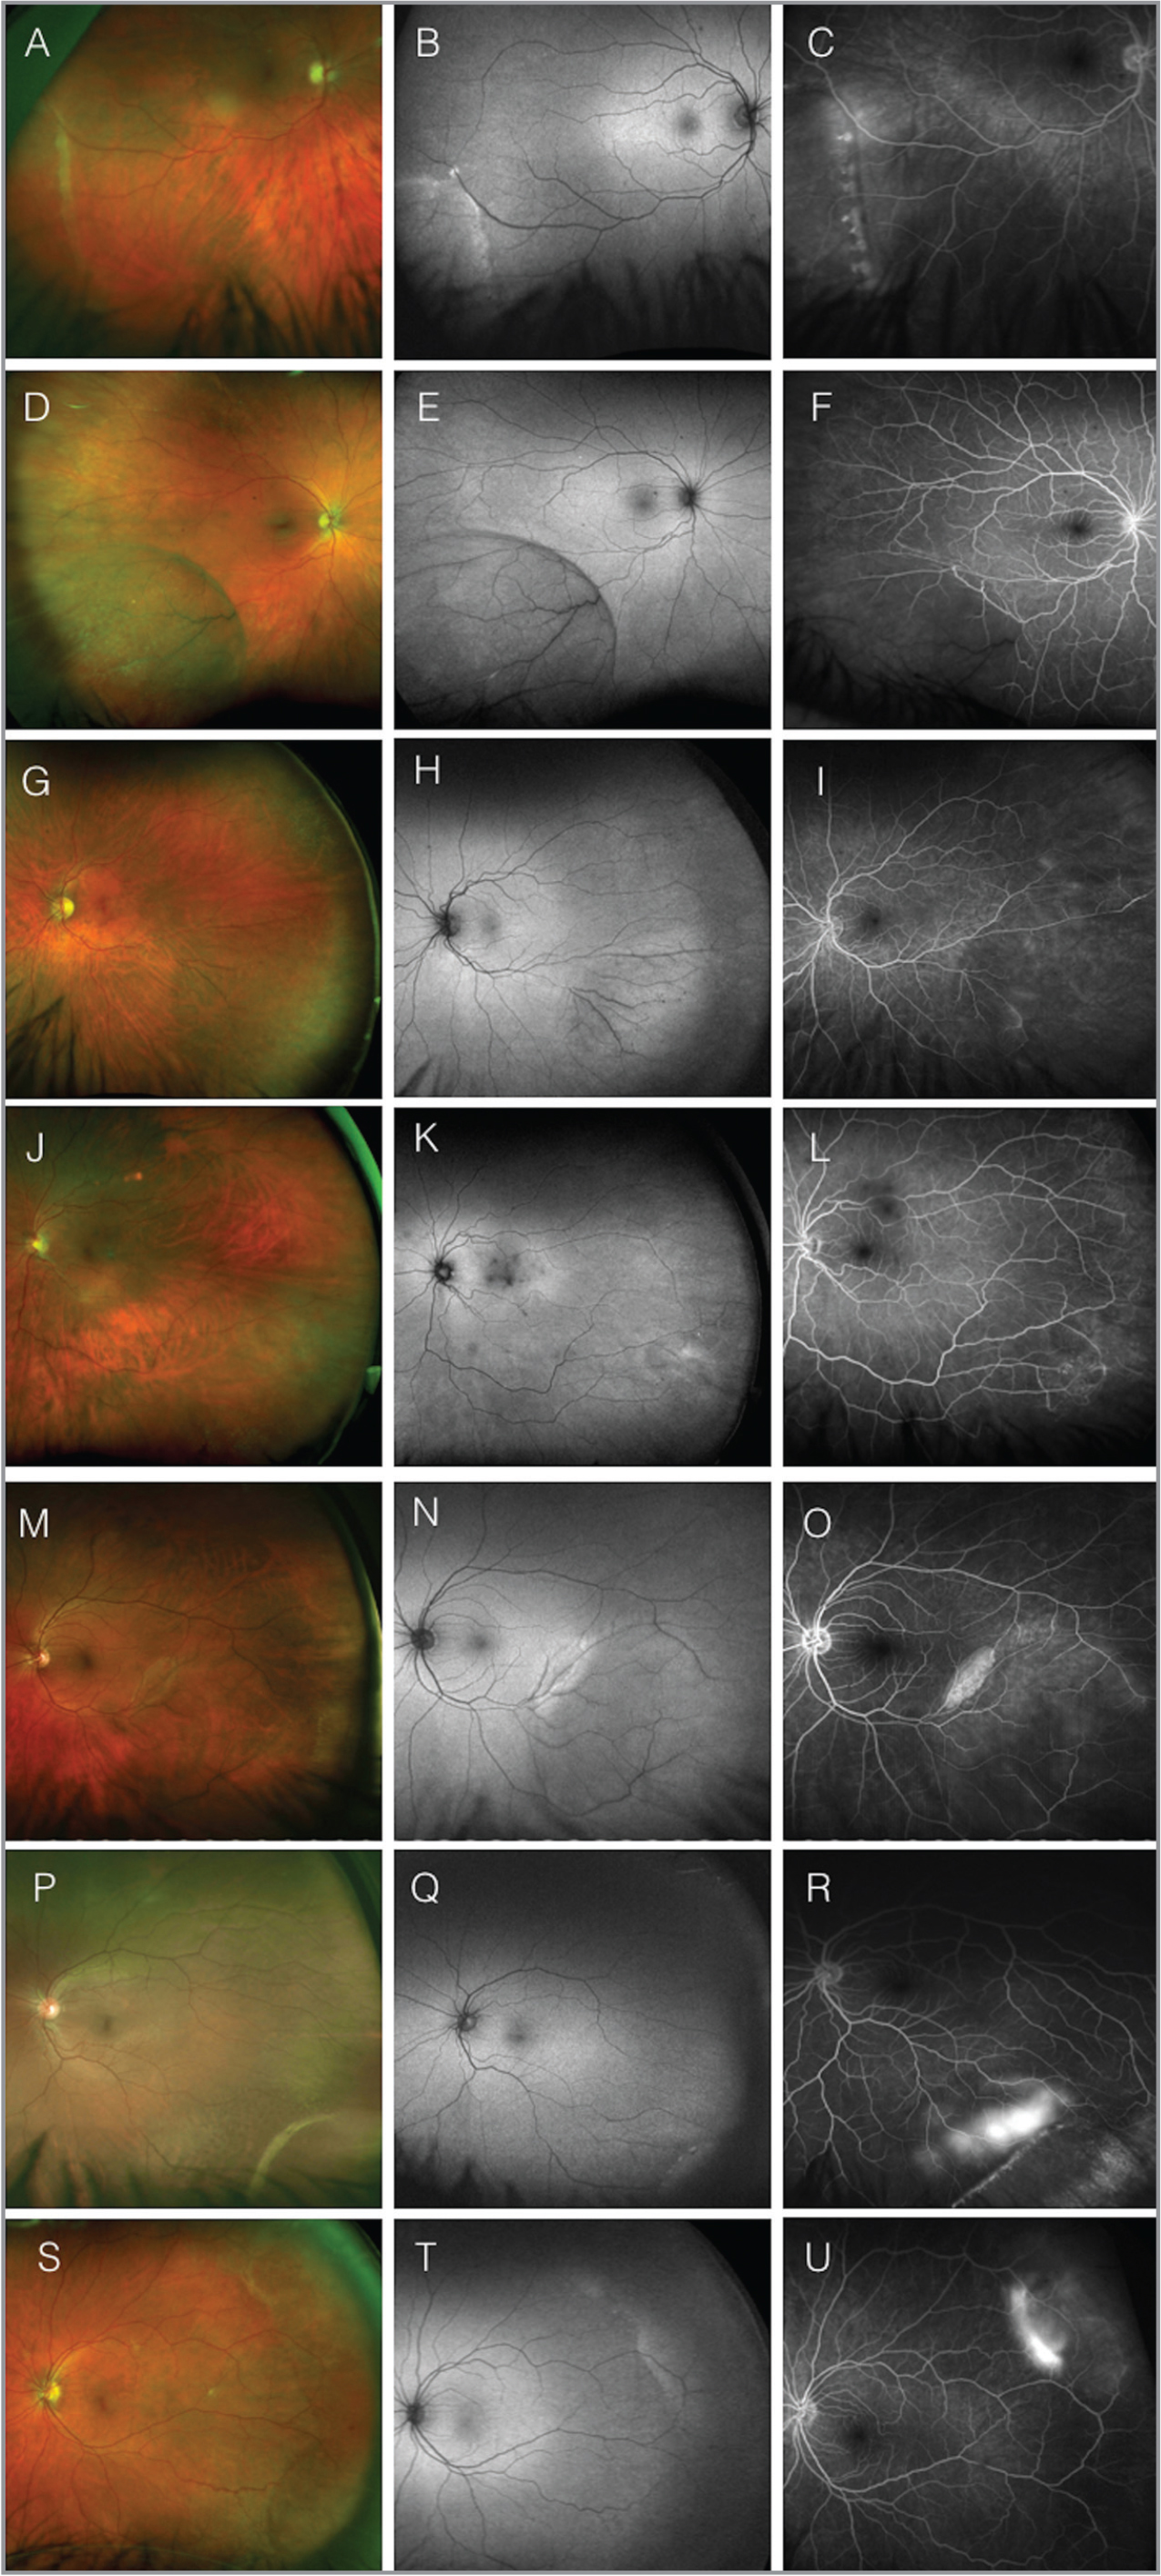 "Representative pseudocolor, fundus autofluorescence (FAF), and fluorescein angiography (FA) ultra-widefield images of seven different patients with degenerative retinoschisis. In the pseudocolor fundus images, outer retinal holes (A, M, P, S), Gunn's dots (D, G, J, P), isolated retinal hemorrhages (J, S), and ""dark"" vessels running the dome of the schisis cavity (D, G, M, P) can be observed. In the FAF images, localized hyperautofluorescence, due to unmasking of retinal pigment epithelium autofluorescence, can be identified in the areas corresponding to the outer retinal breaks (B, M, S). In the FA images, transmission of fluorescence is noted in the areas associated with outer retinal breaks (C, O, U). Delayed vascular filling in the early frames (F), vessel wall staining (I), areas of capillary nonperfusion (I), and diffuse vascular leakage (L, O, R) are also noted."